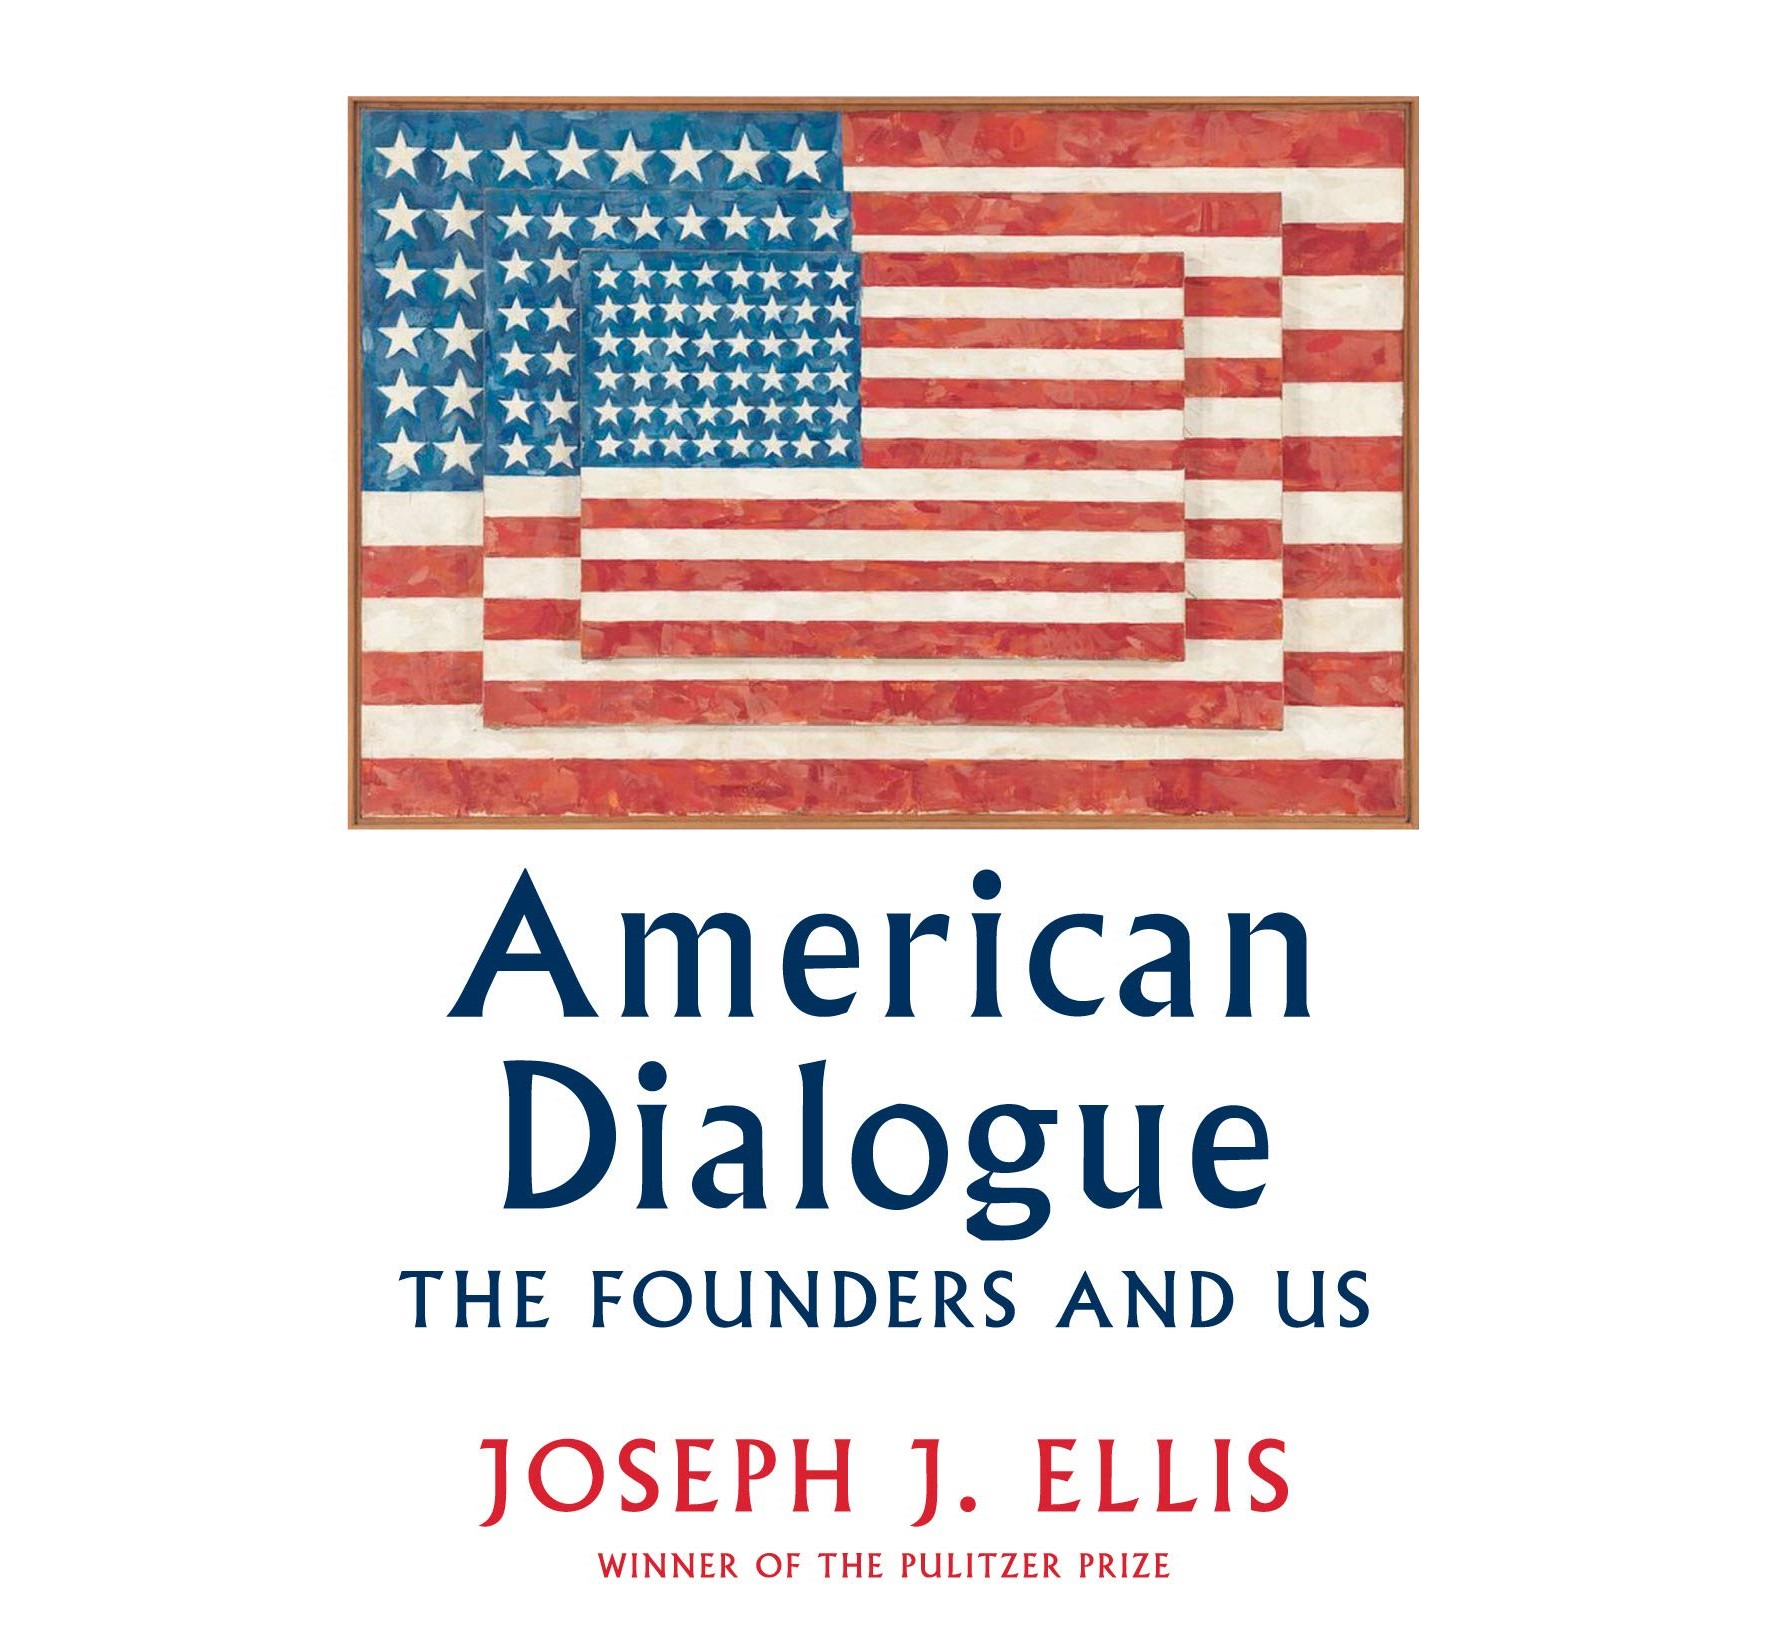 Bookcover for American Dialogue: The Founders and Us by Joseph J. Ellis